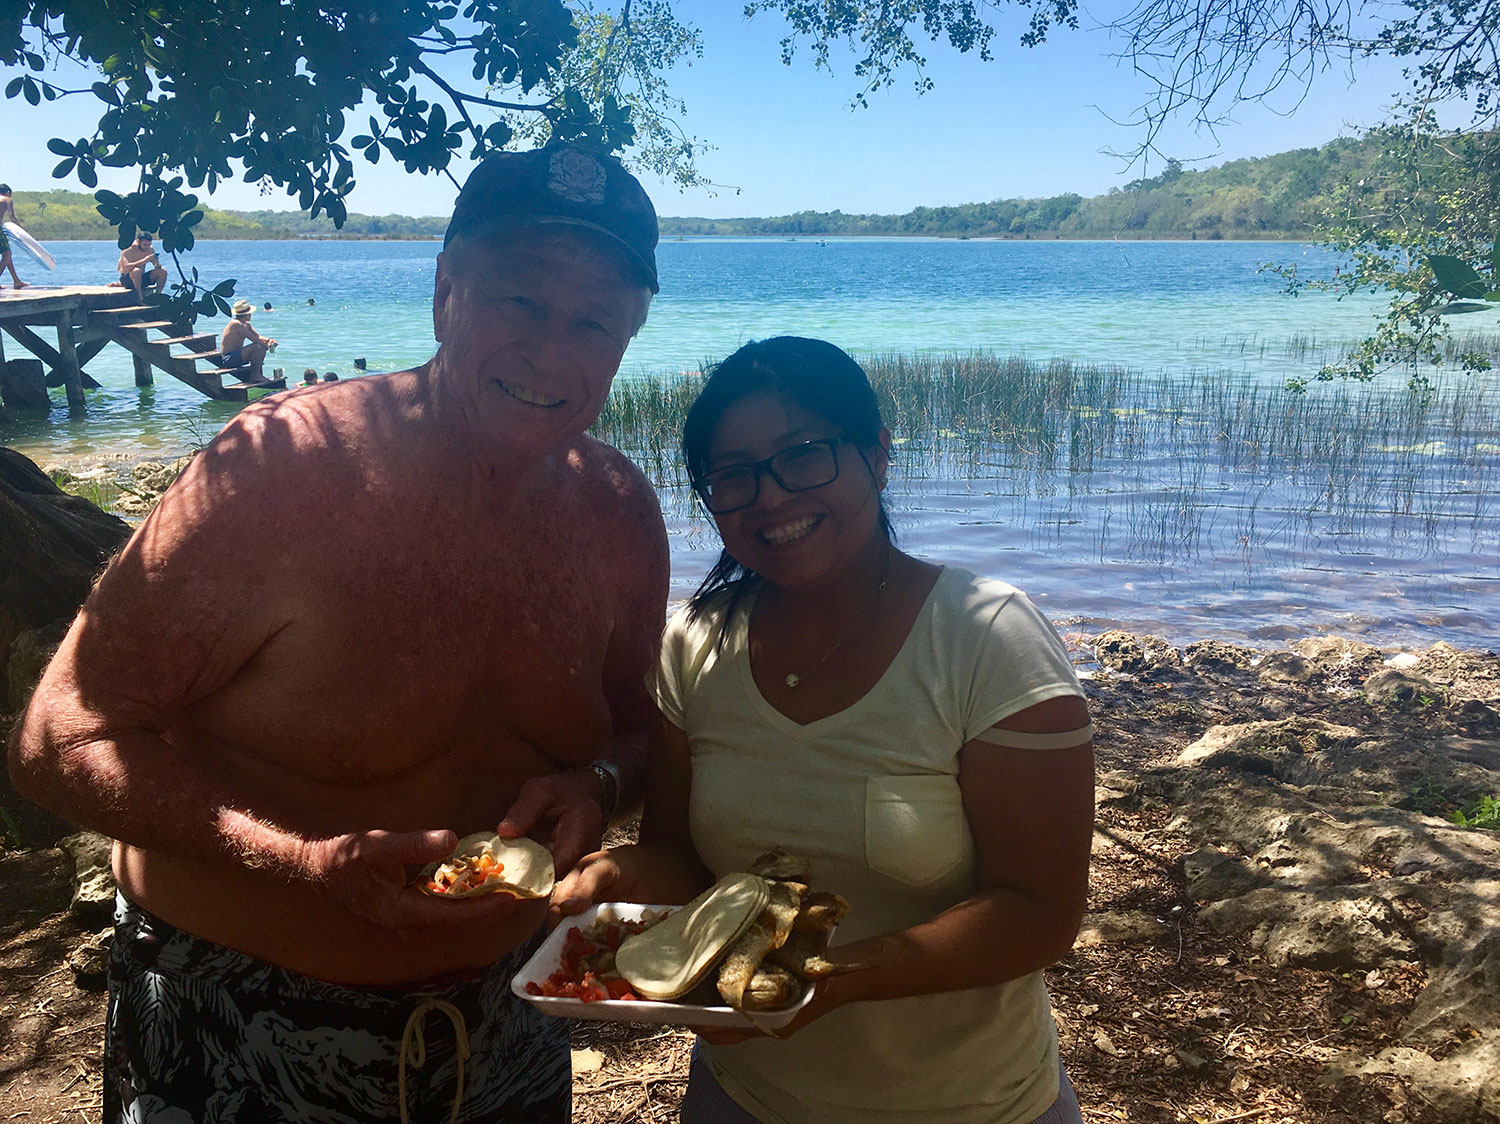 My friend Jim with a Maya lady who offered us fish to share.